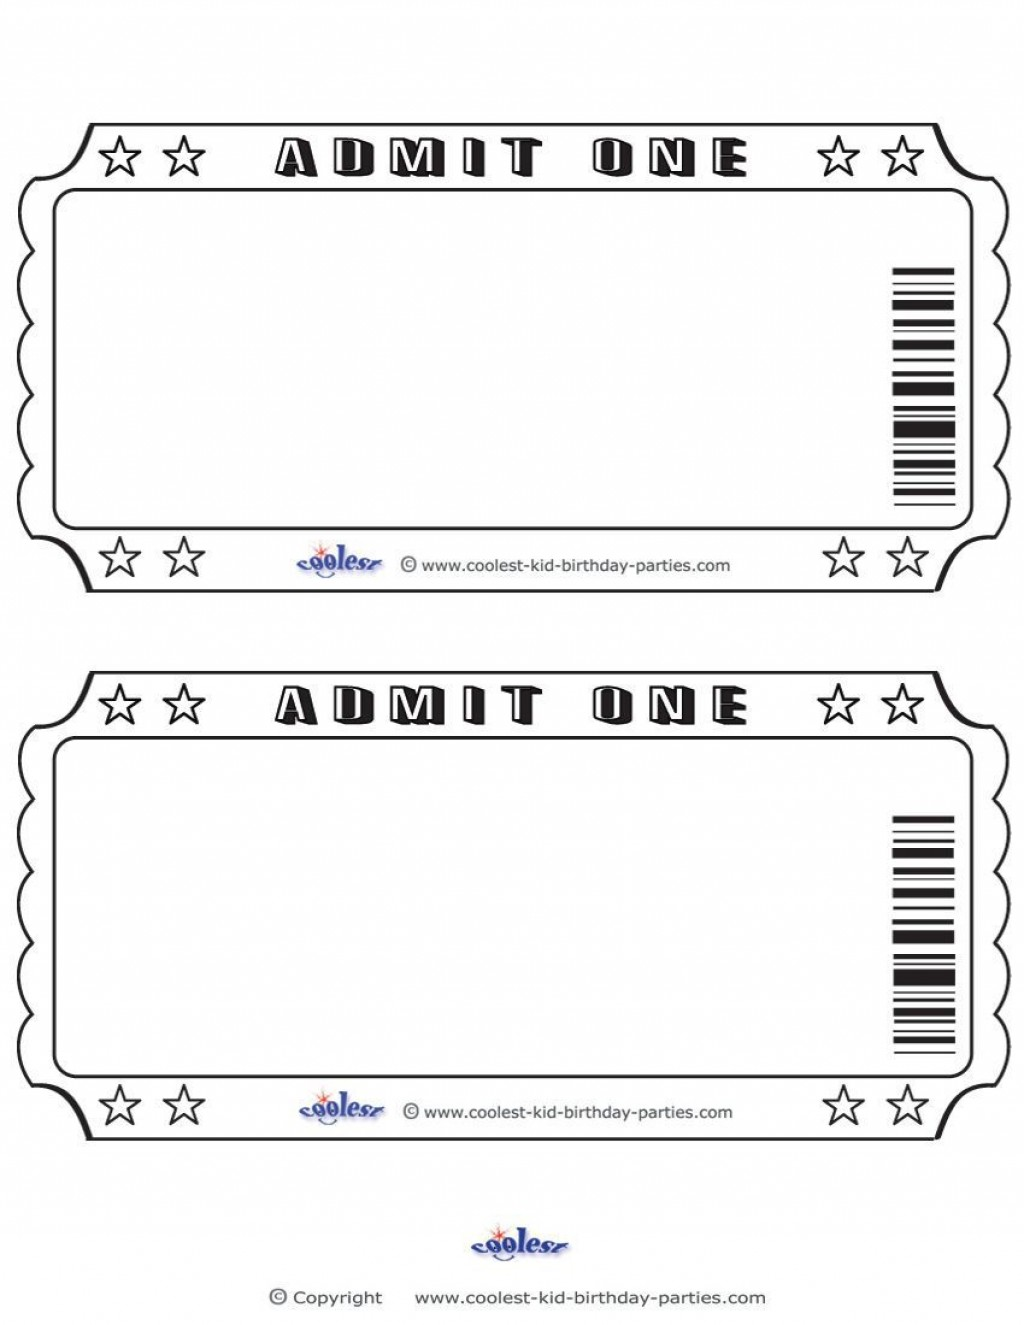 002 Remarkable Print Ticket Free Template Concept  Your OwnLarge